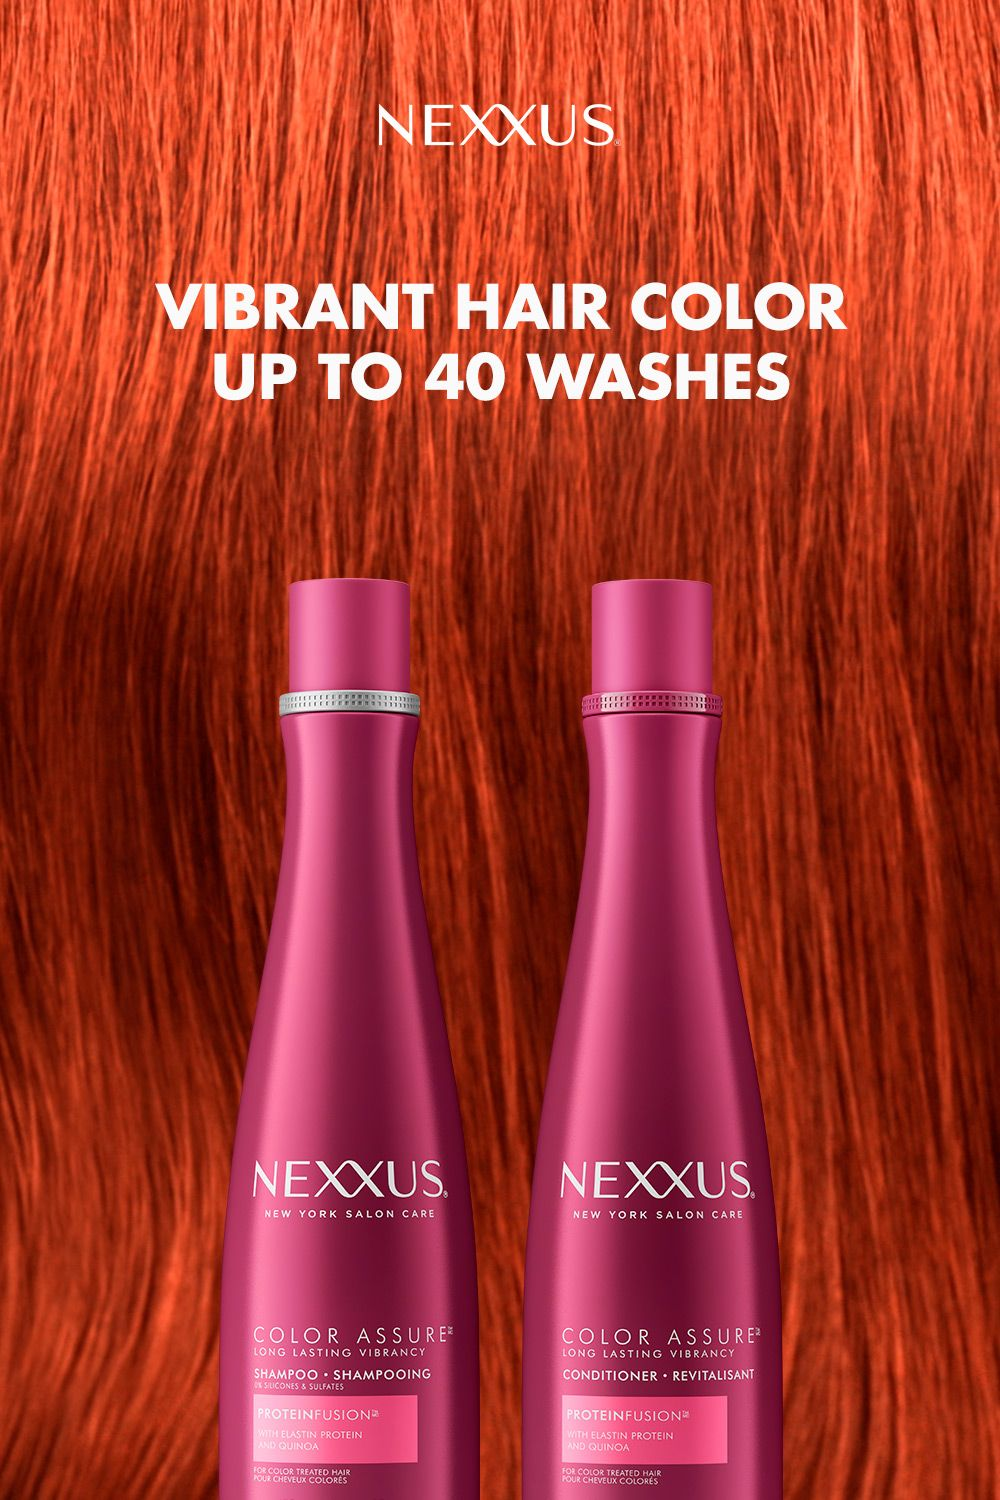 Keep your hair color vibrant with sulfate free Nexxus